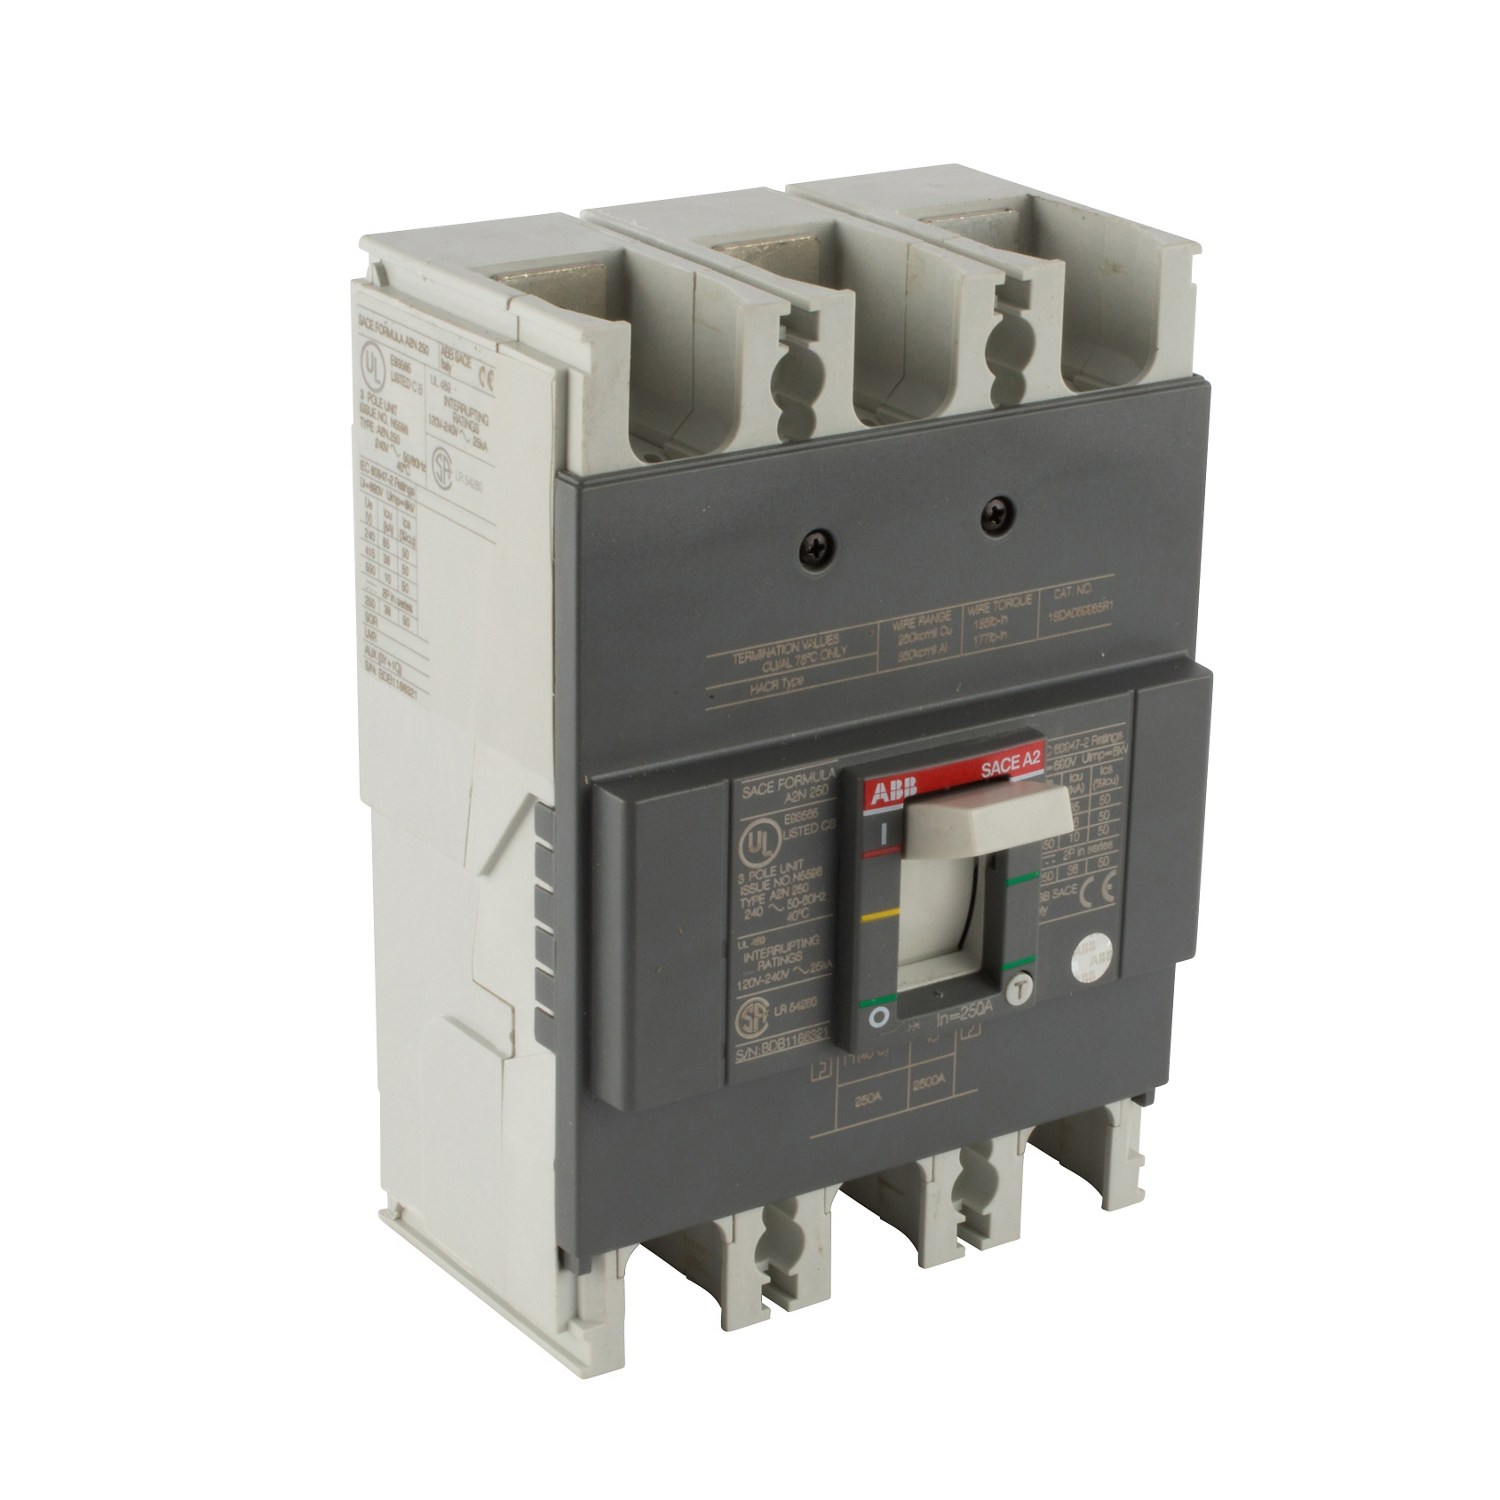 ABB A2N200TW-2 Molded Case Circuit Breakrs